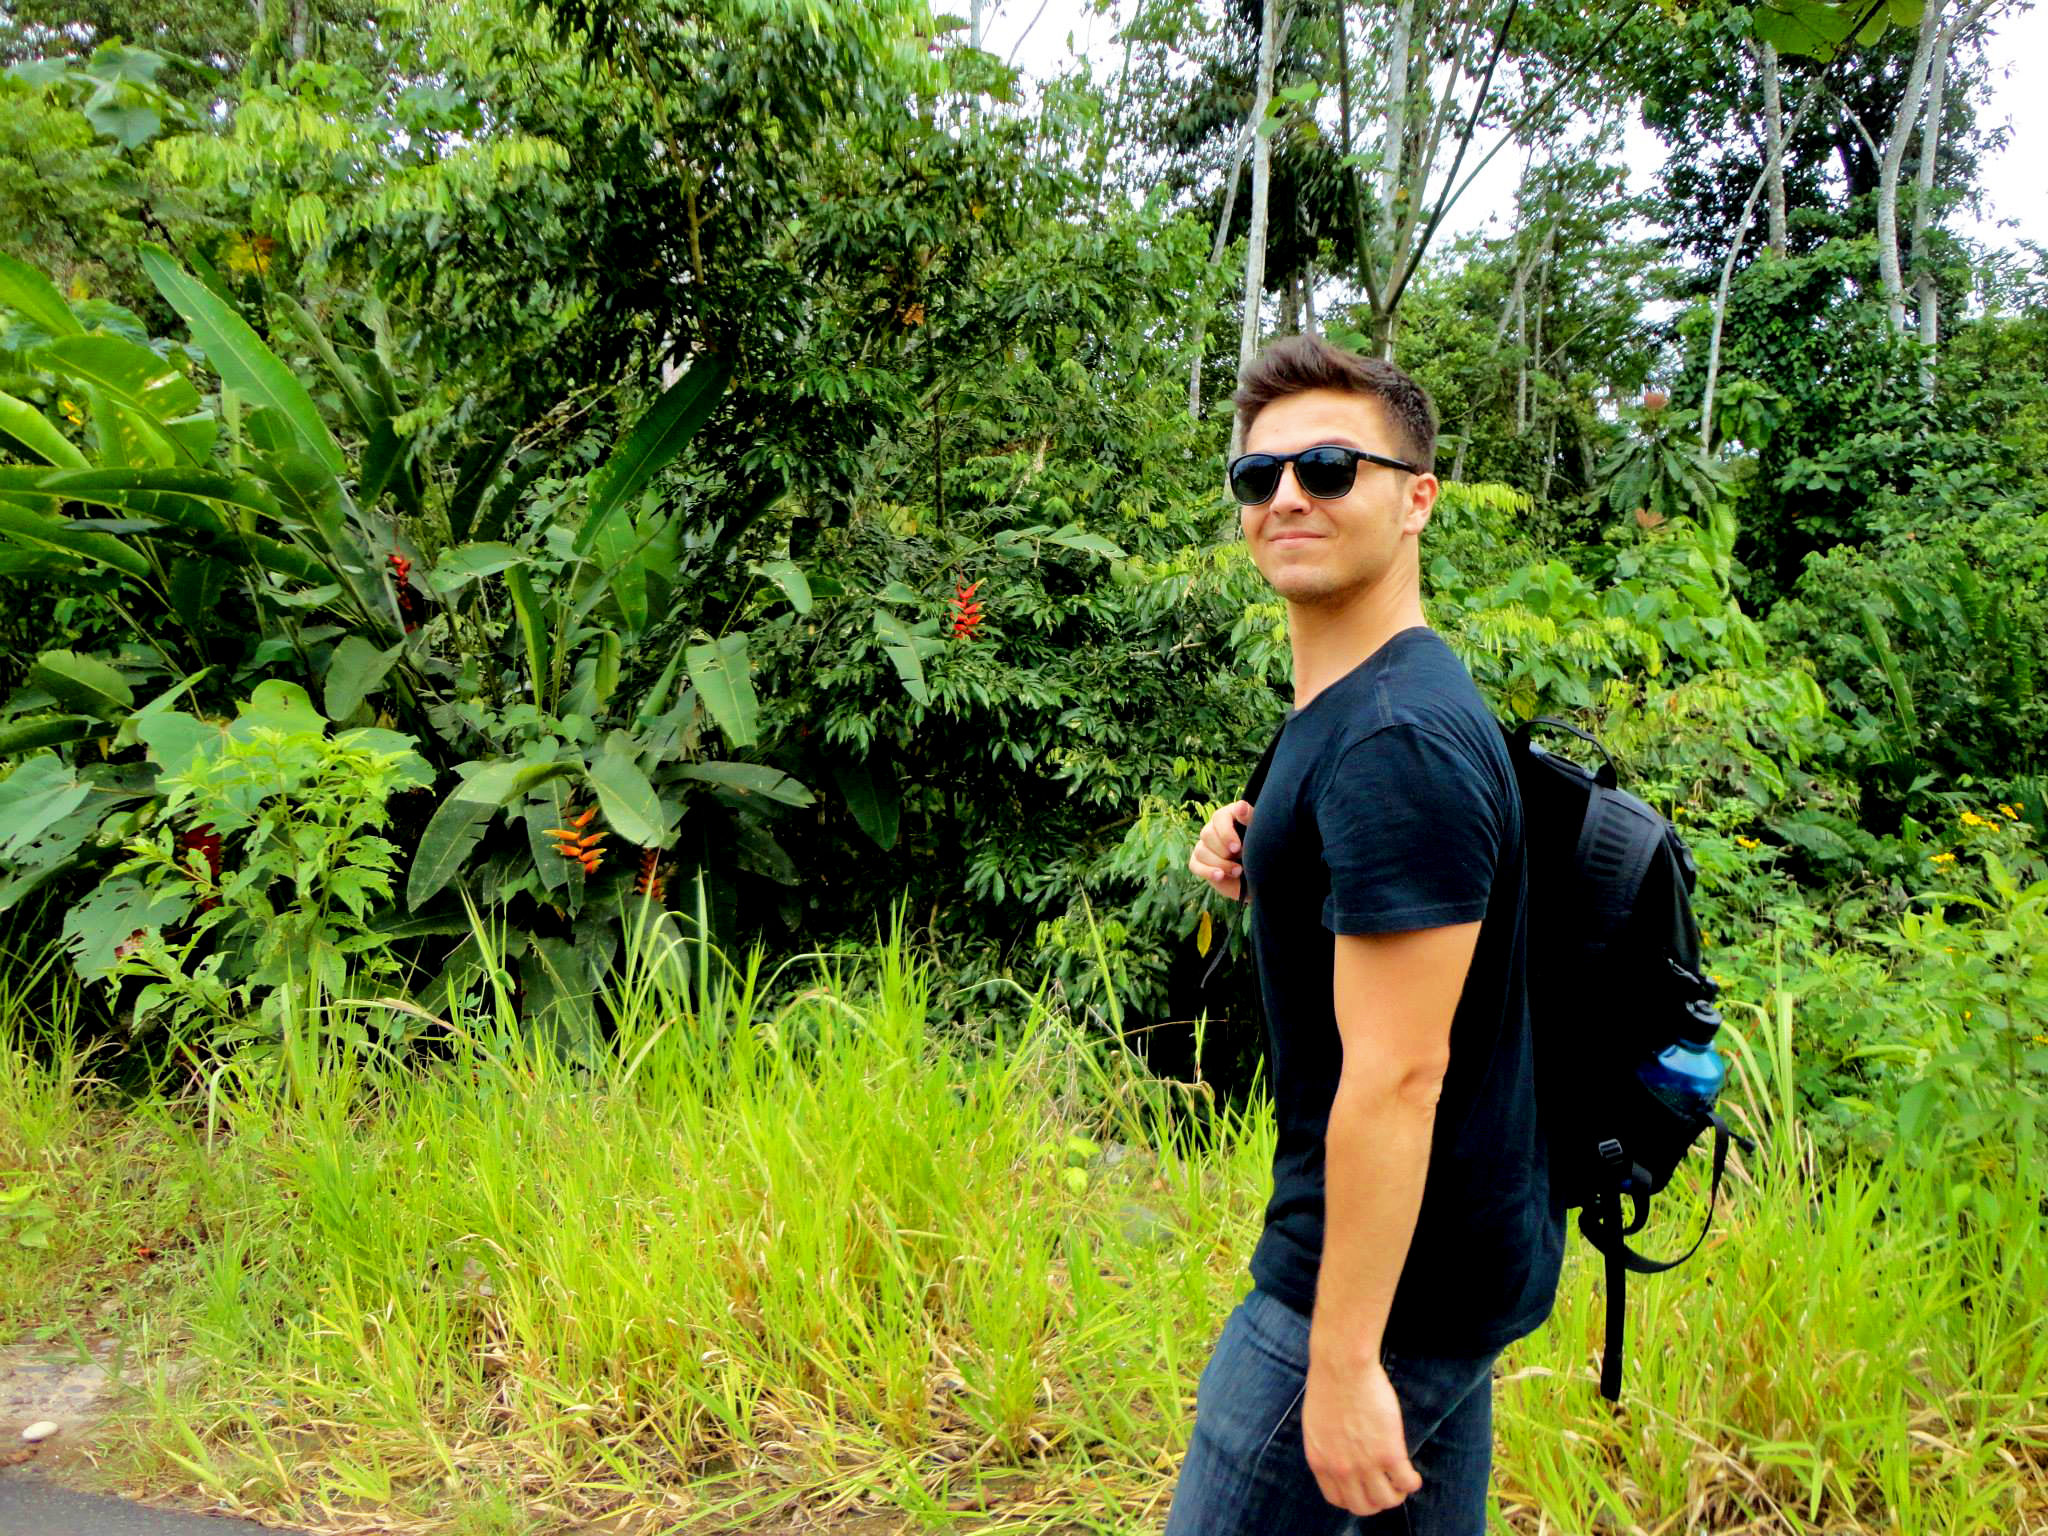 Ever wondered what an Alma Sana commute to our clinics looks like? Between our rural pilot sites in the Ecuadorian Amazon, it's pretty green! Here's Alex Bozzette, our Ecuador Project Coordinator, trekking down the jungle road that stretches between two of our clinics. Alex uses a combination of public buses, canoes, pickup trucks, and good old-fashioned walking to get to our project sites every day. Photo taken: Oct. 16, 2013.